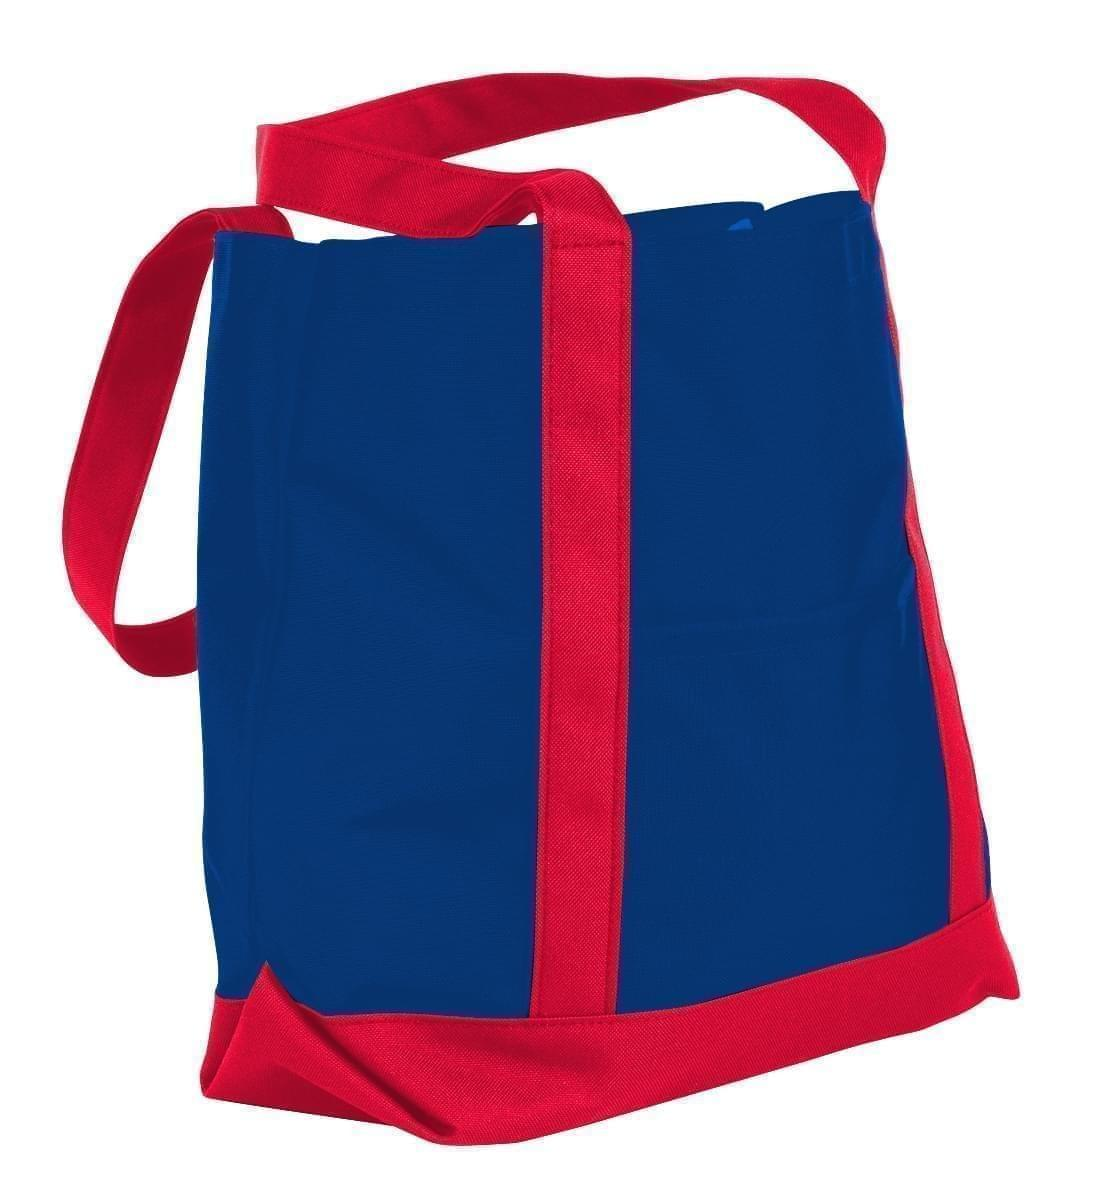 USA Made Canvas Fashion Tote Bags, Royal Blue-Red, XAACL1UAFL